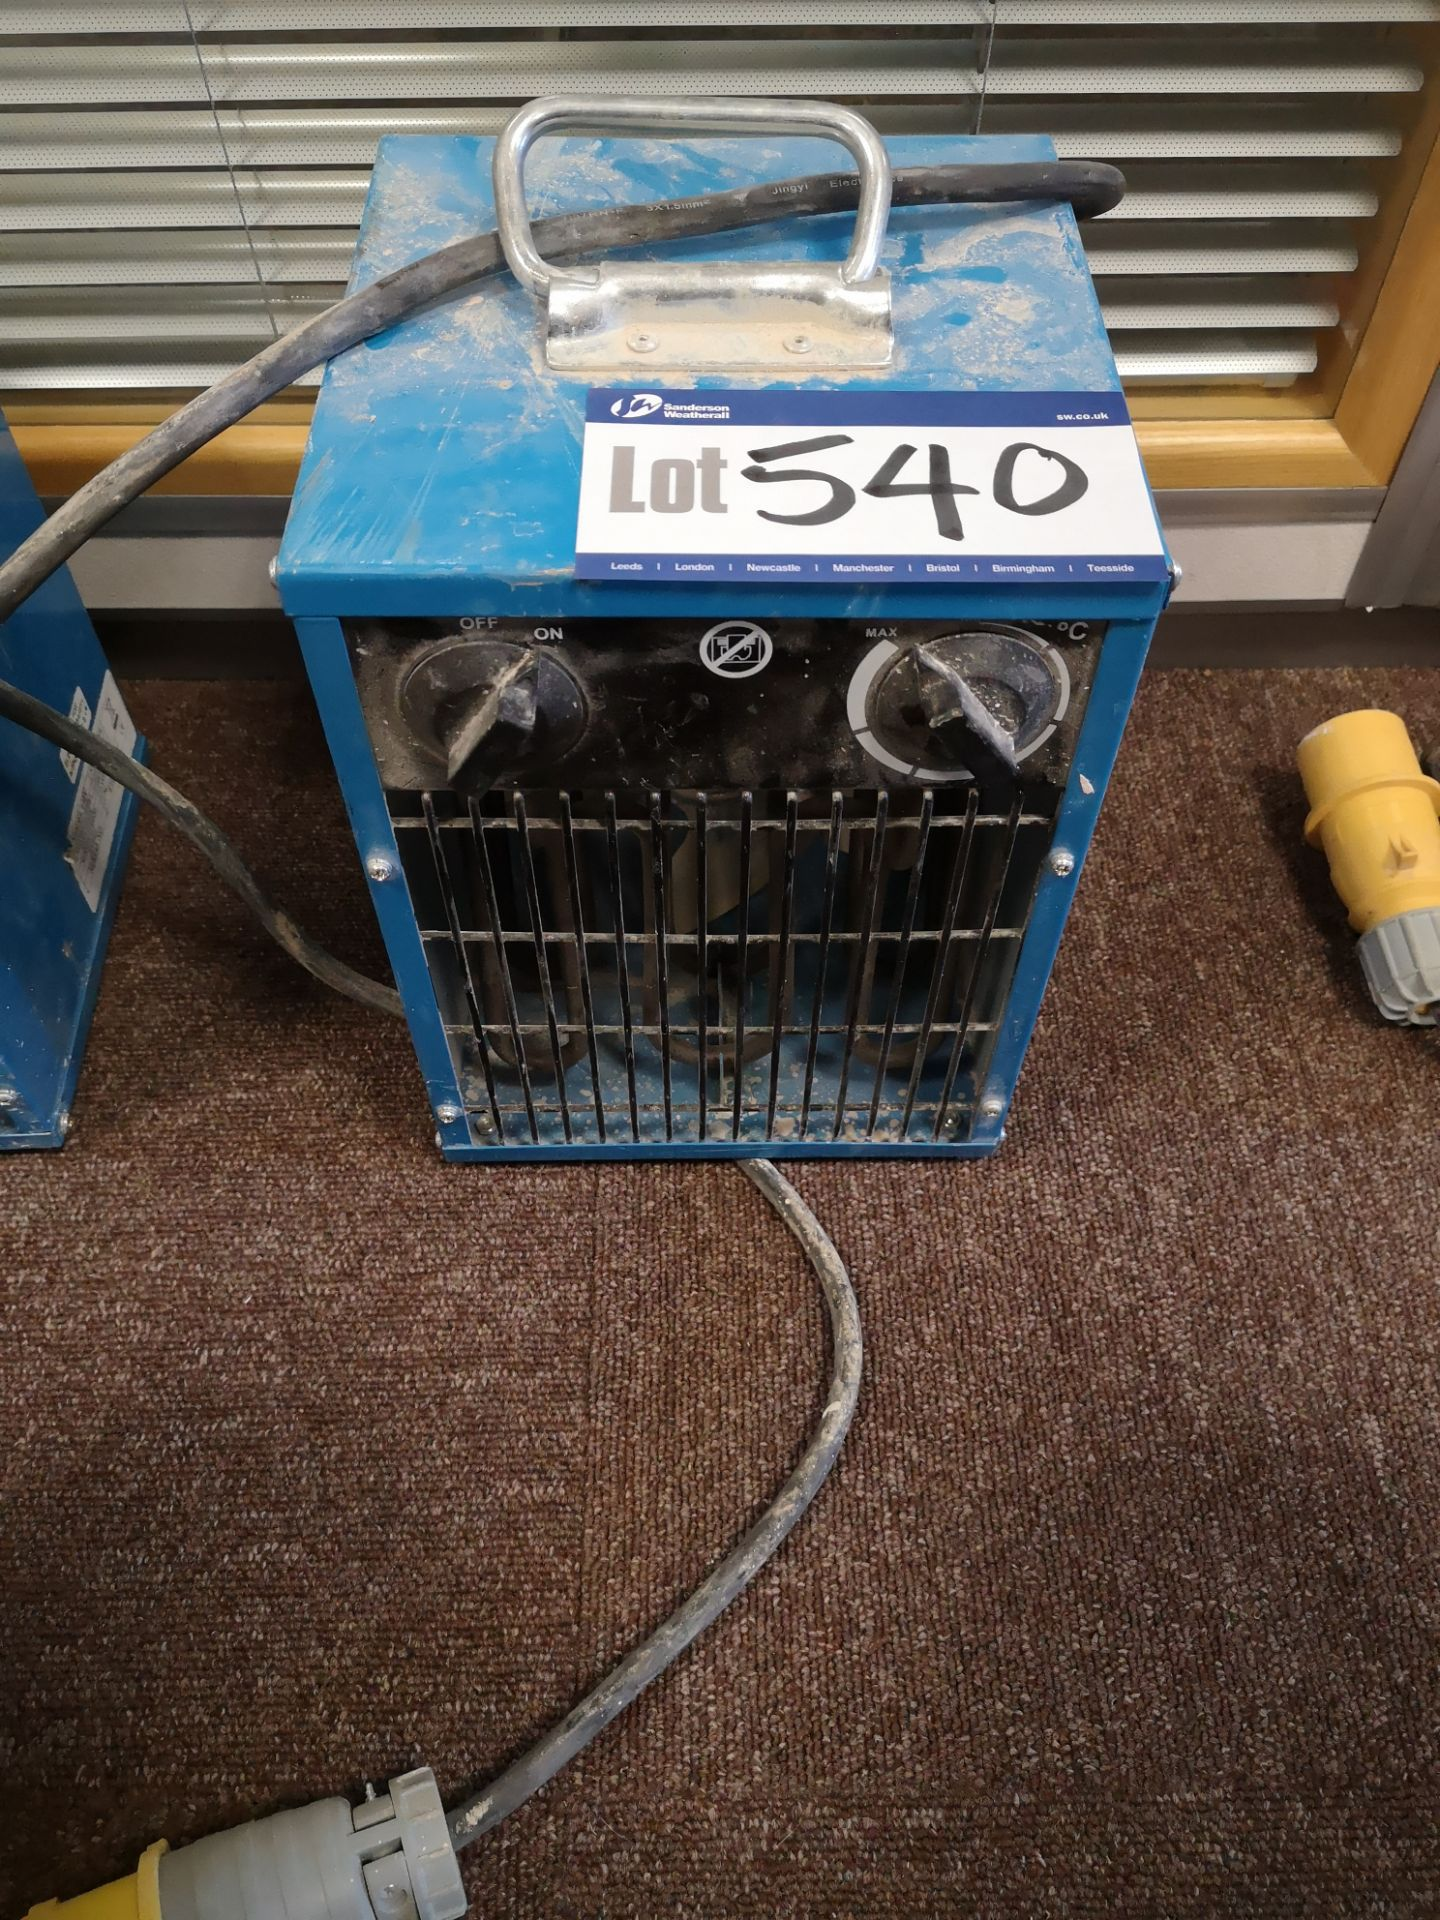 Lot 540 - Site Master Fan Heater, 110V (LOT LOCATED AT 153 L